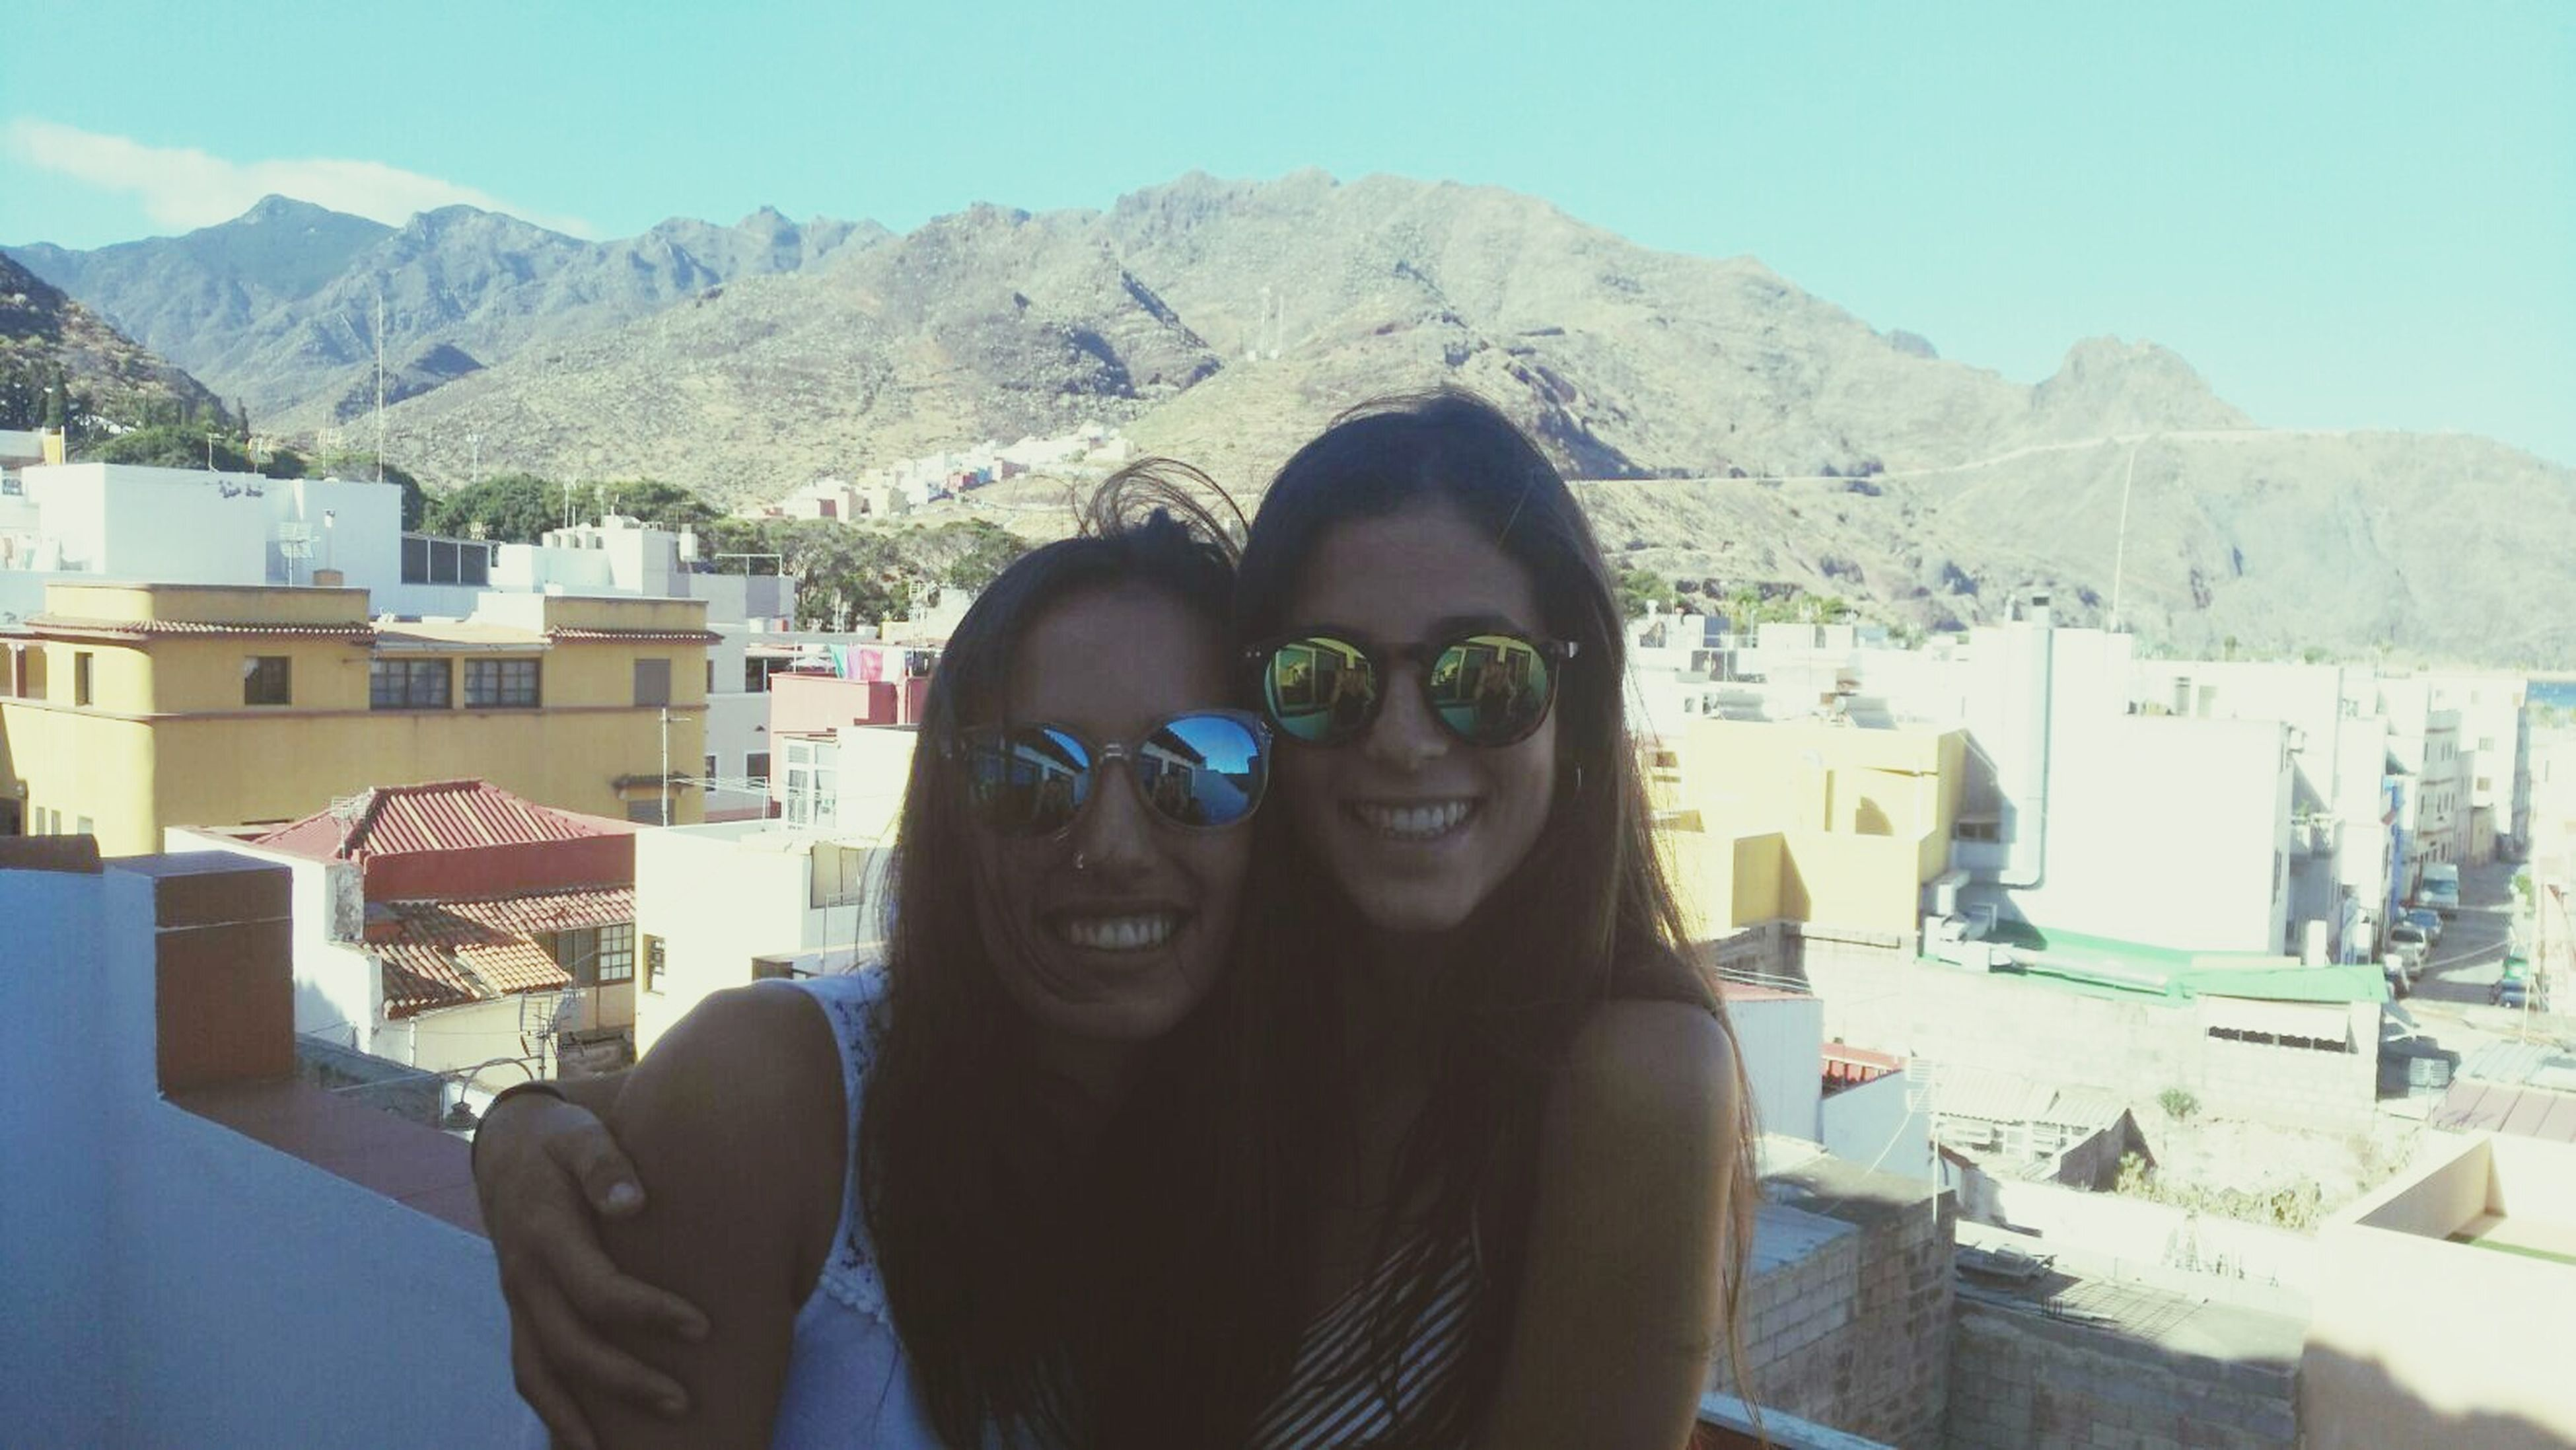 mountain, looking at camera, portrait, young women, toothy smile, leisure activity, friendship, young adult, togetherness, lifestyles, architecture, smiling, building exterior, front view, built structure, sunglasses, enjoyment, long hair, mountain range, fun, friends, mountain peak